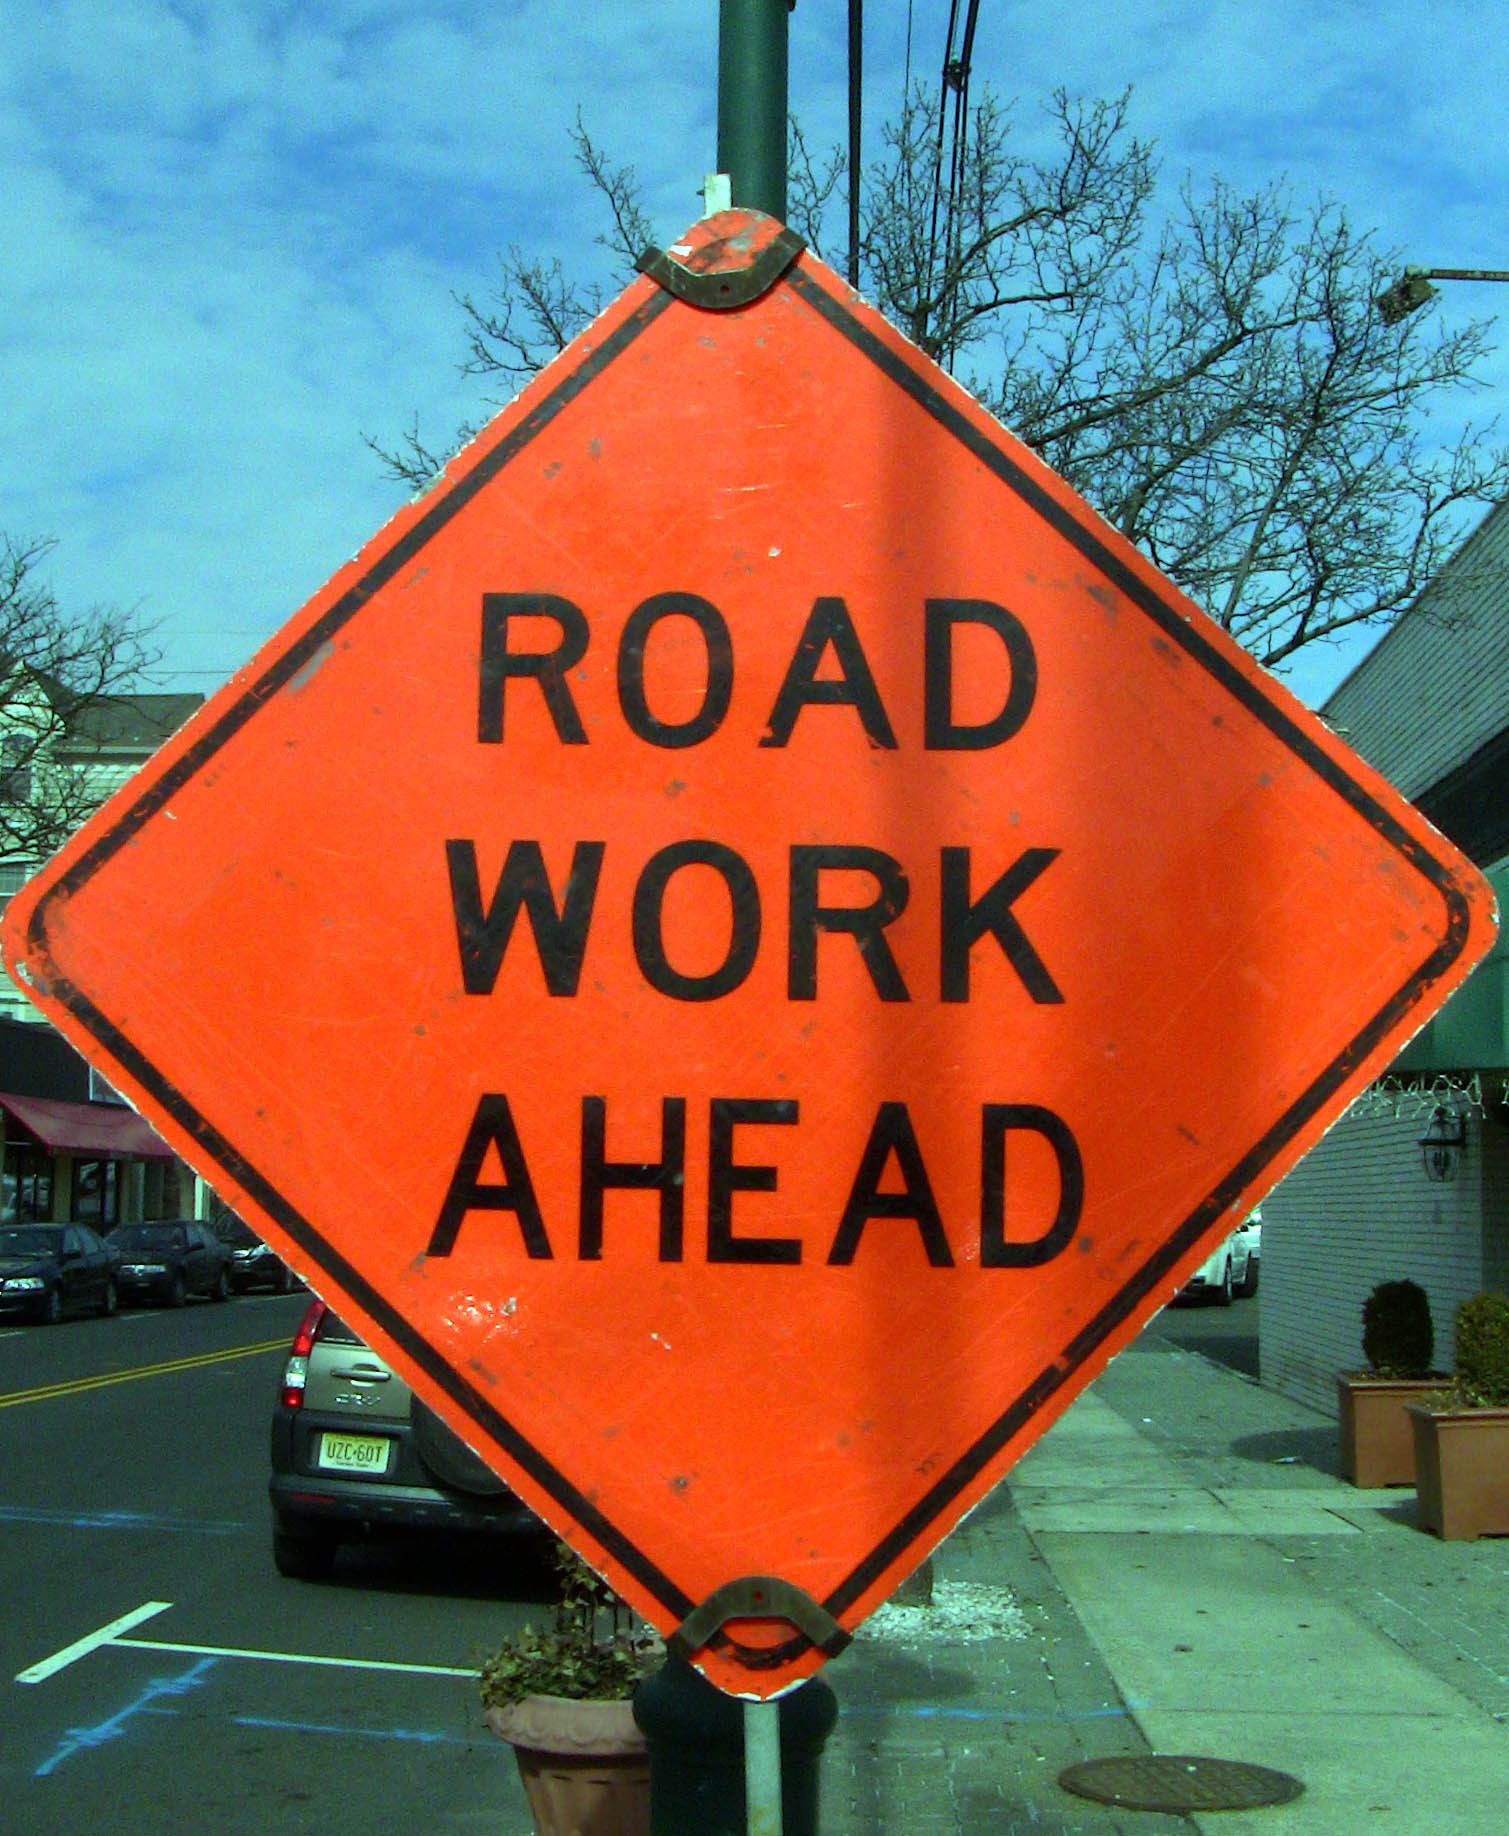 c3bda061faaf2eab6525_Road_Work_Ahead_sign.jpg